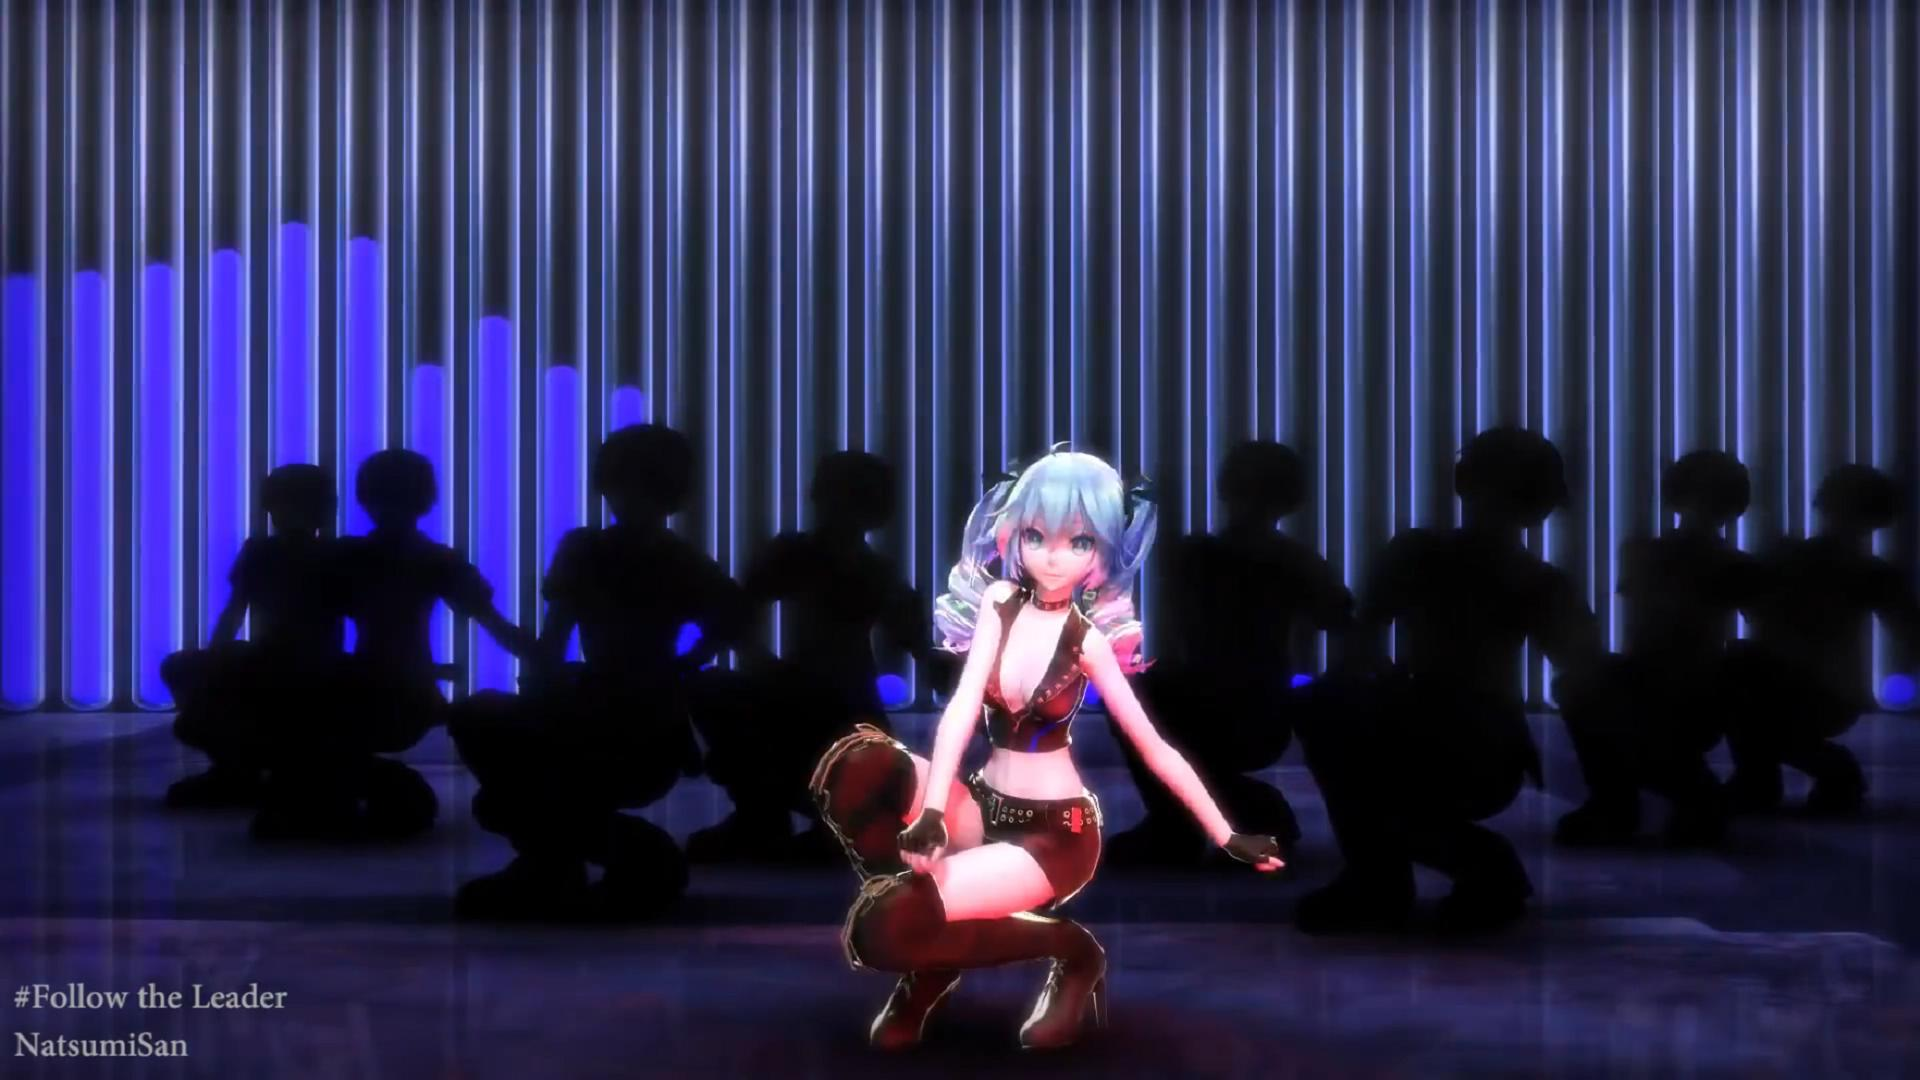 [MMD] Follow the Leader [Motion Download]_20170116174412.JPG